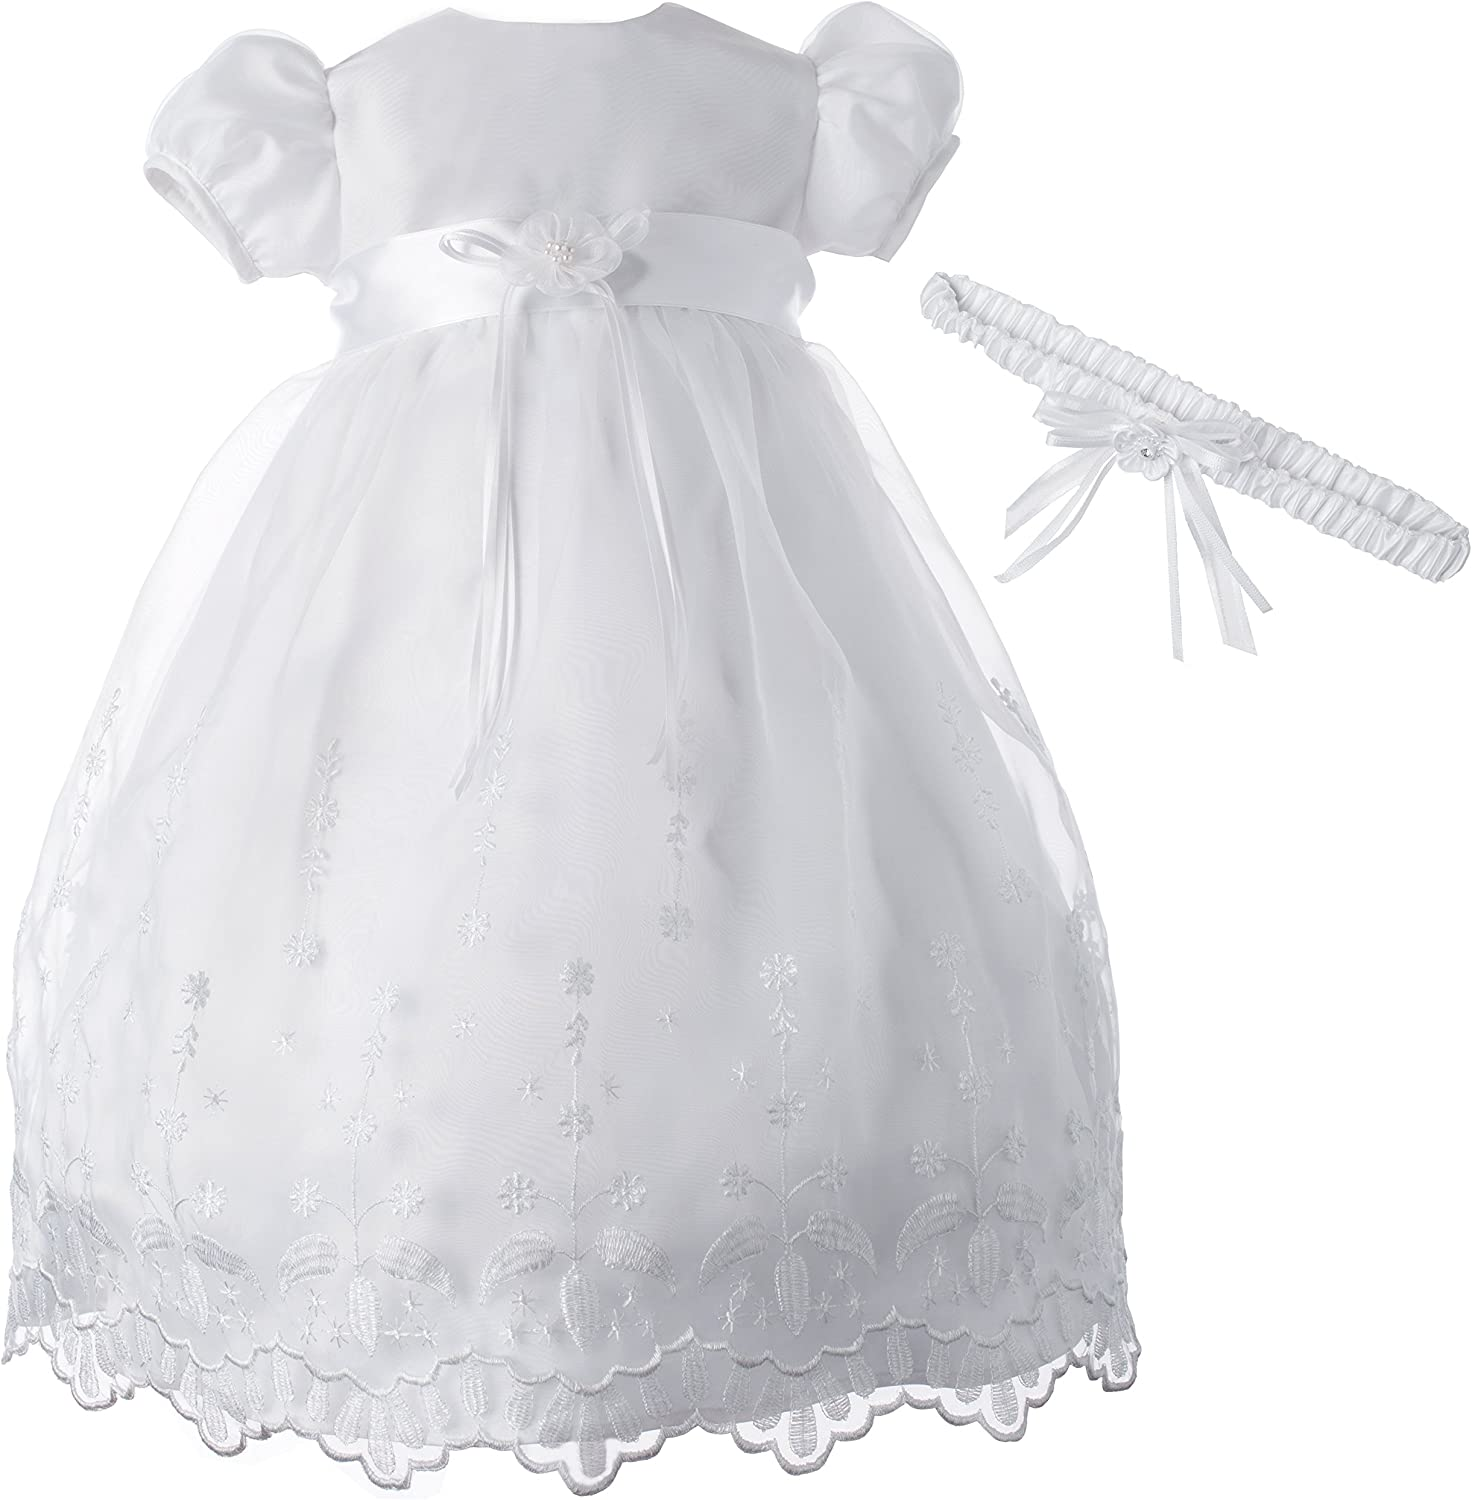 Lauren Madison Baby-Girls Newborn Satin Floral Embroidered Dress Gown Outfit